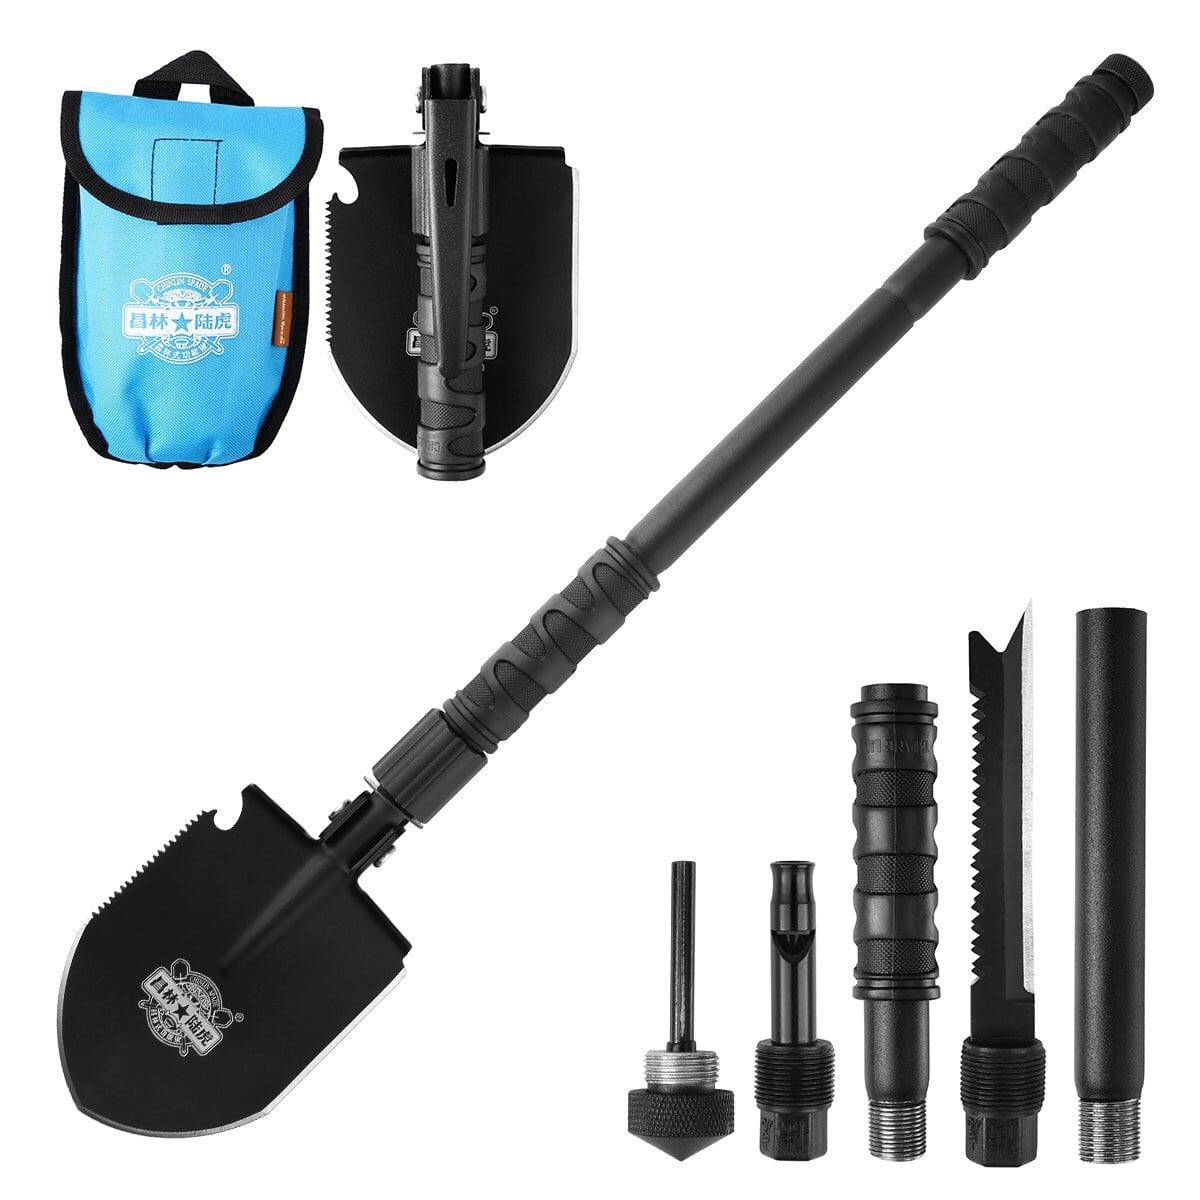 Entrenching Tool Snow Shovel Emergency Hammer Kit Portable Heavy Duty Survival Gear $18.19